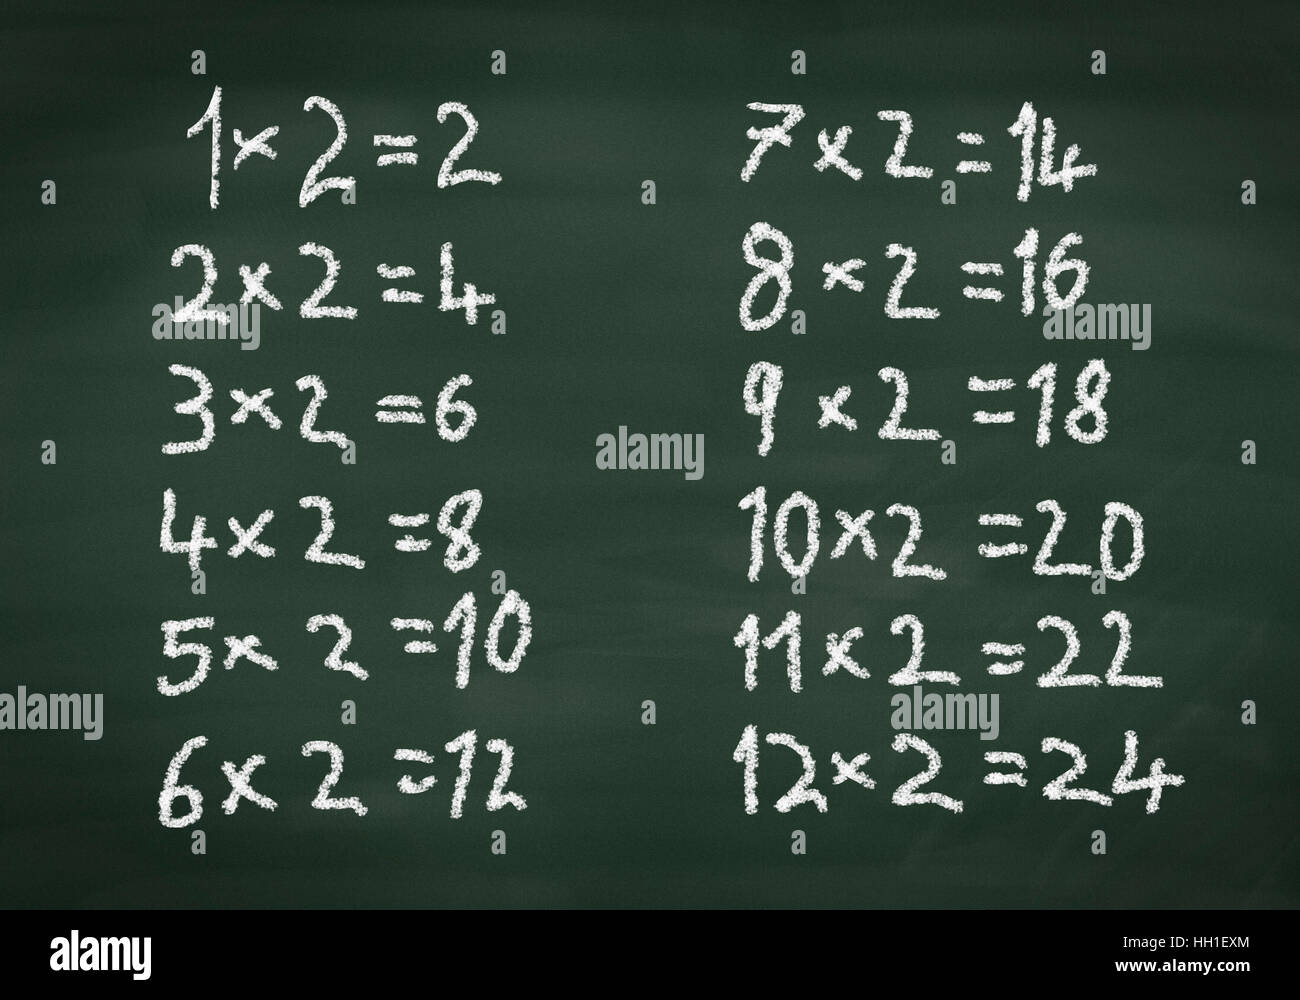 Simple maths times tables on a chalkboard Stock Photo: 130955404 - Alamy